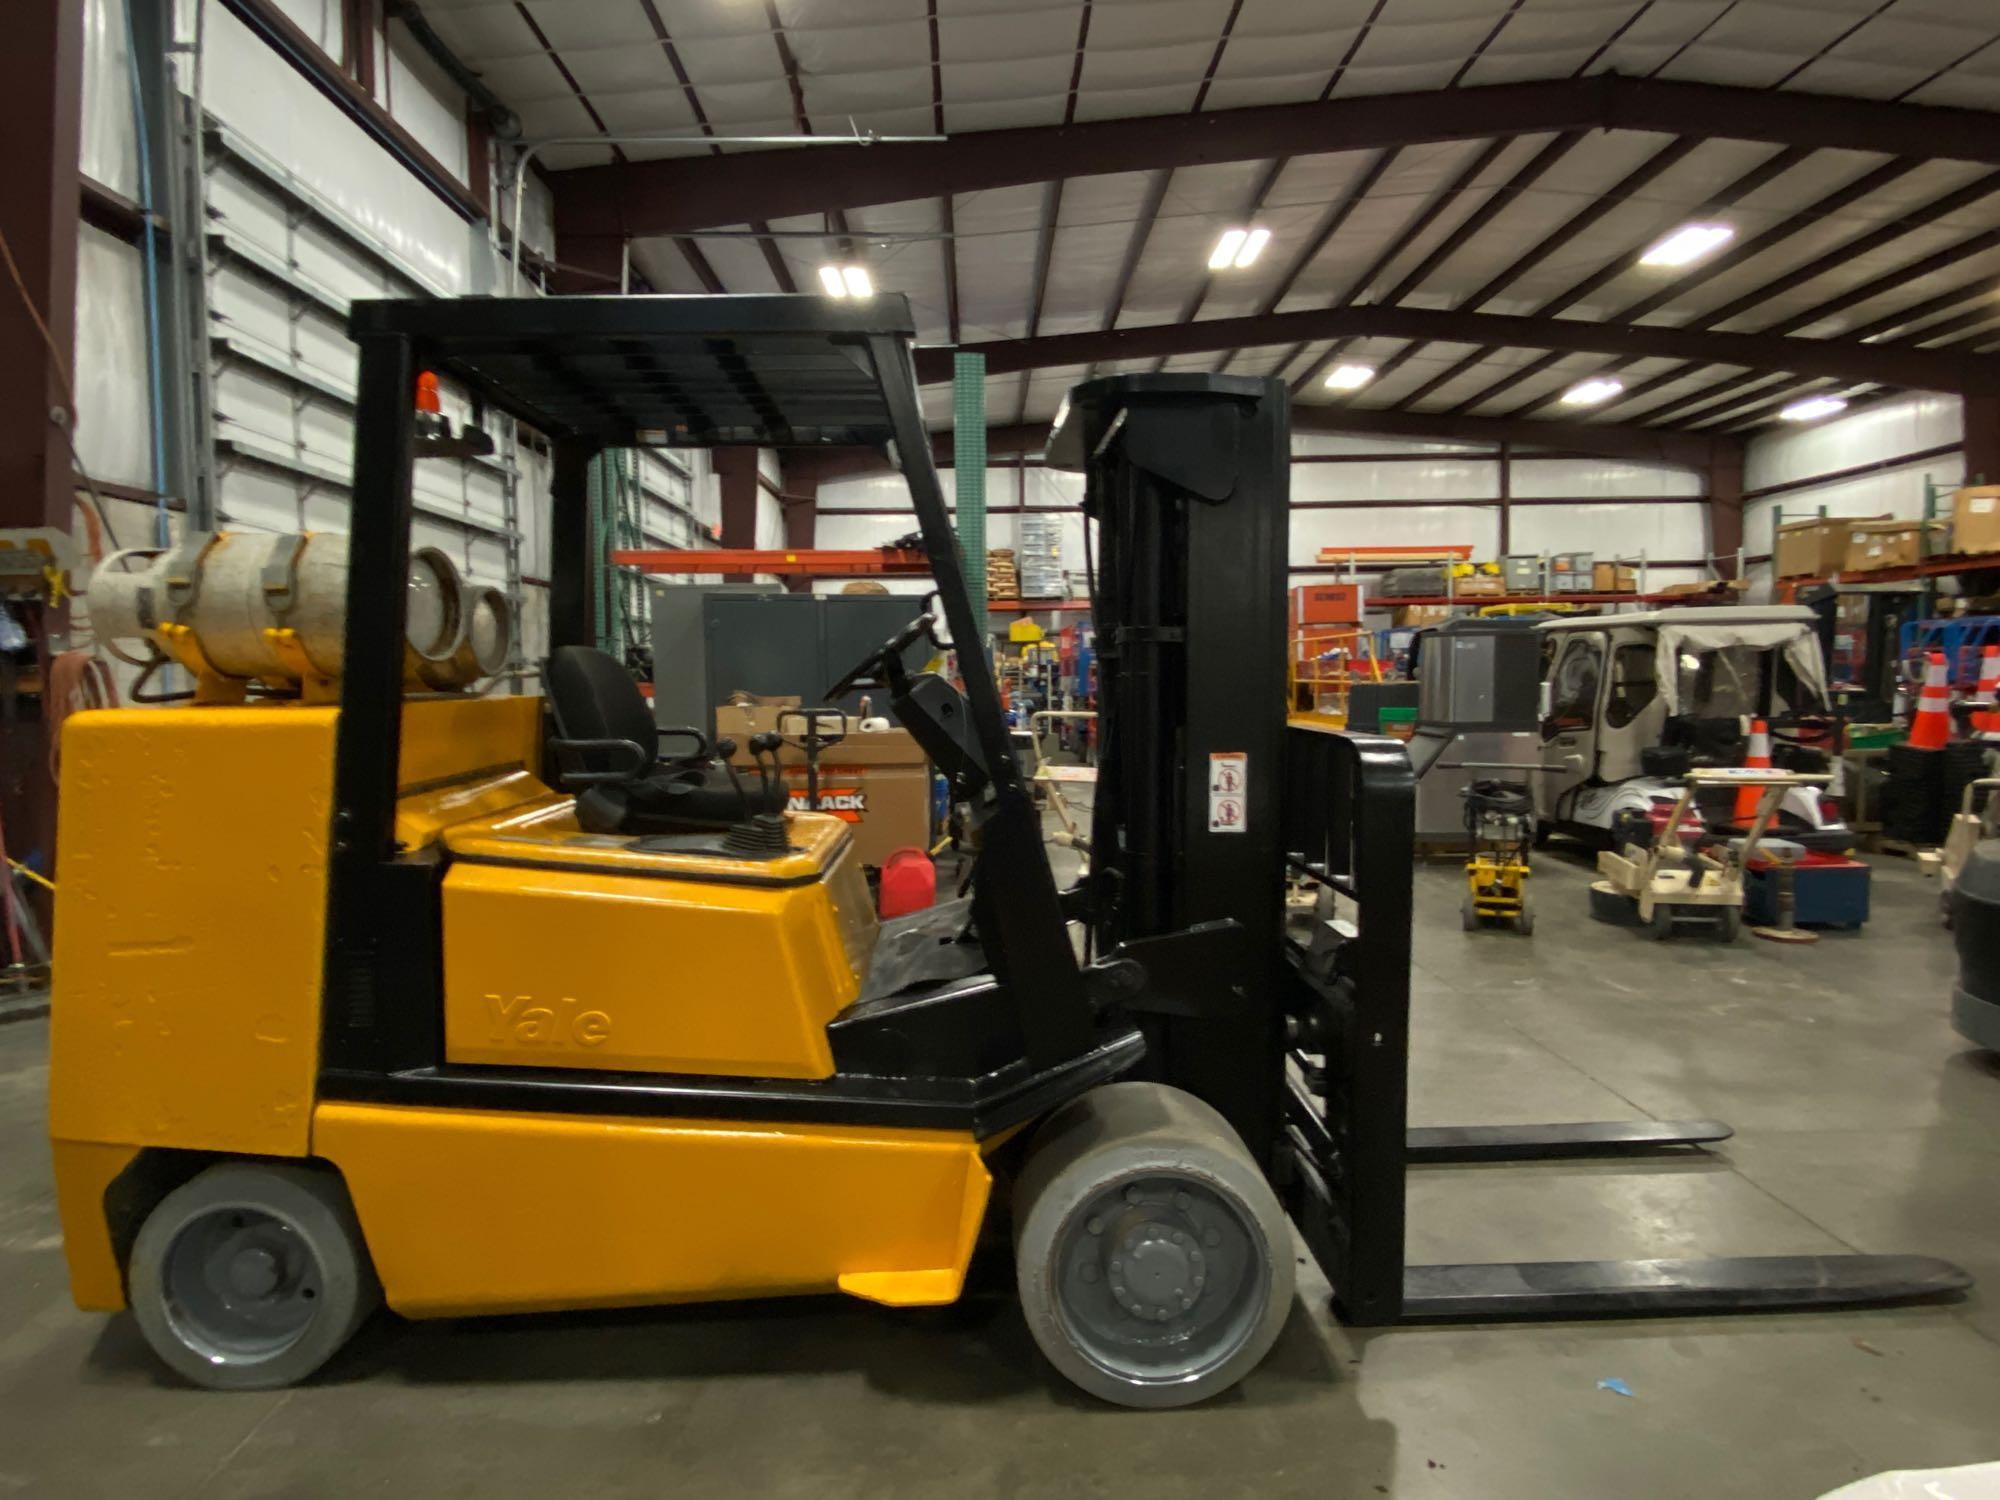 YALE LP FORKLIFT MODEL CLC120, APPROX. 12,000 LB CAPACITY, TILT, SIDE SHIFT, RUNS AND OPERATES - Image 5 of 10